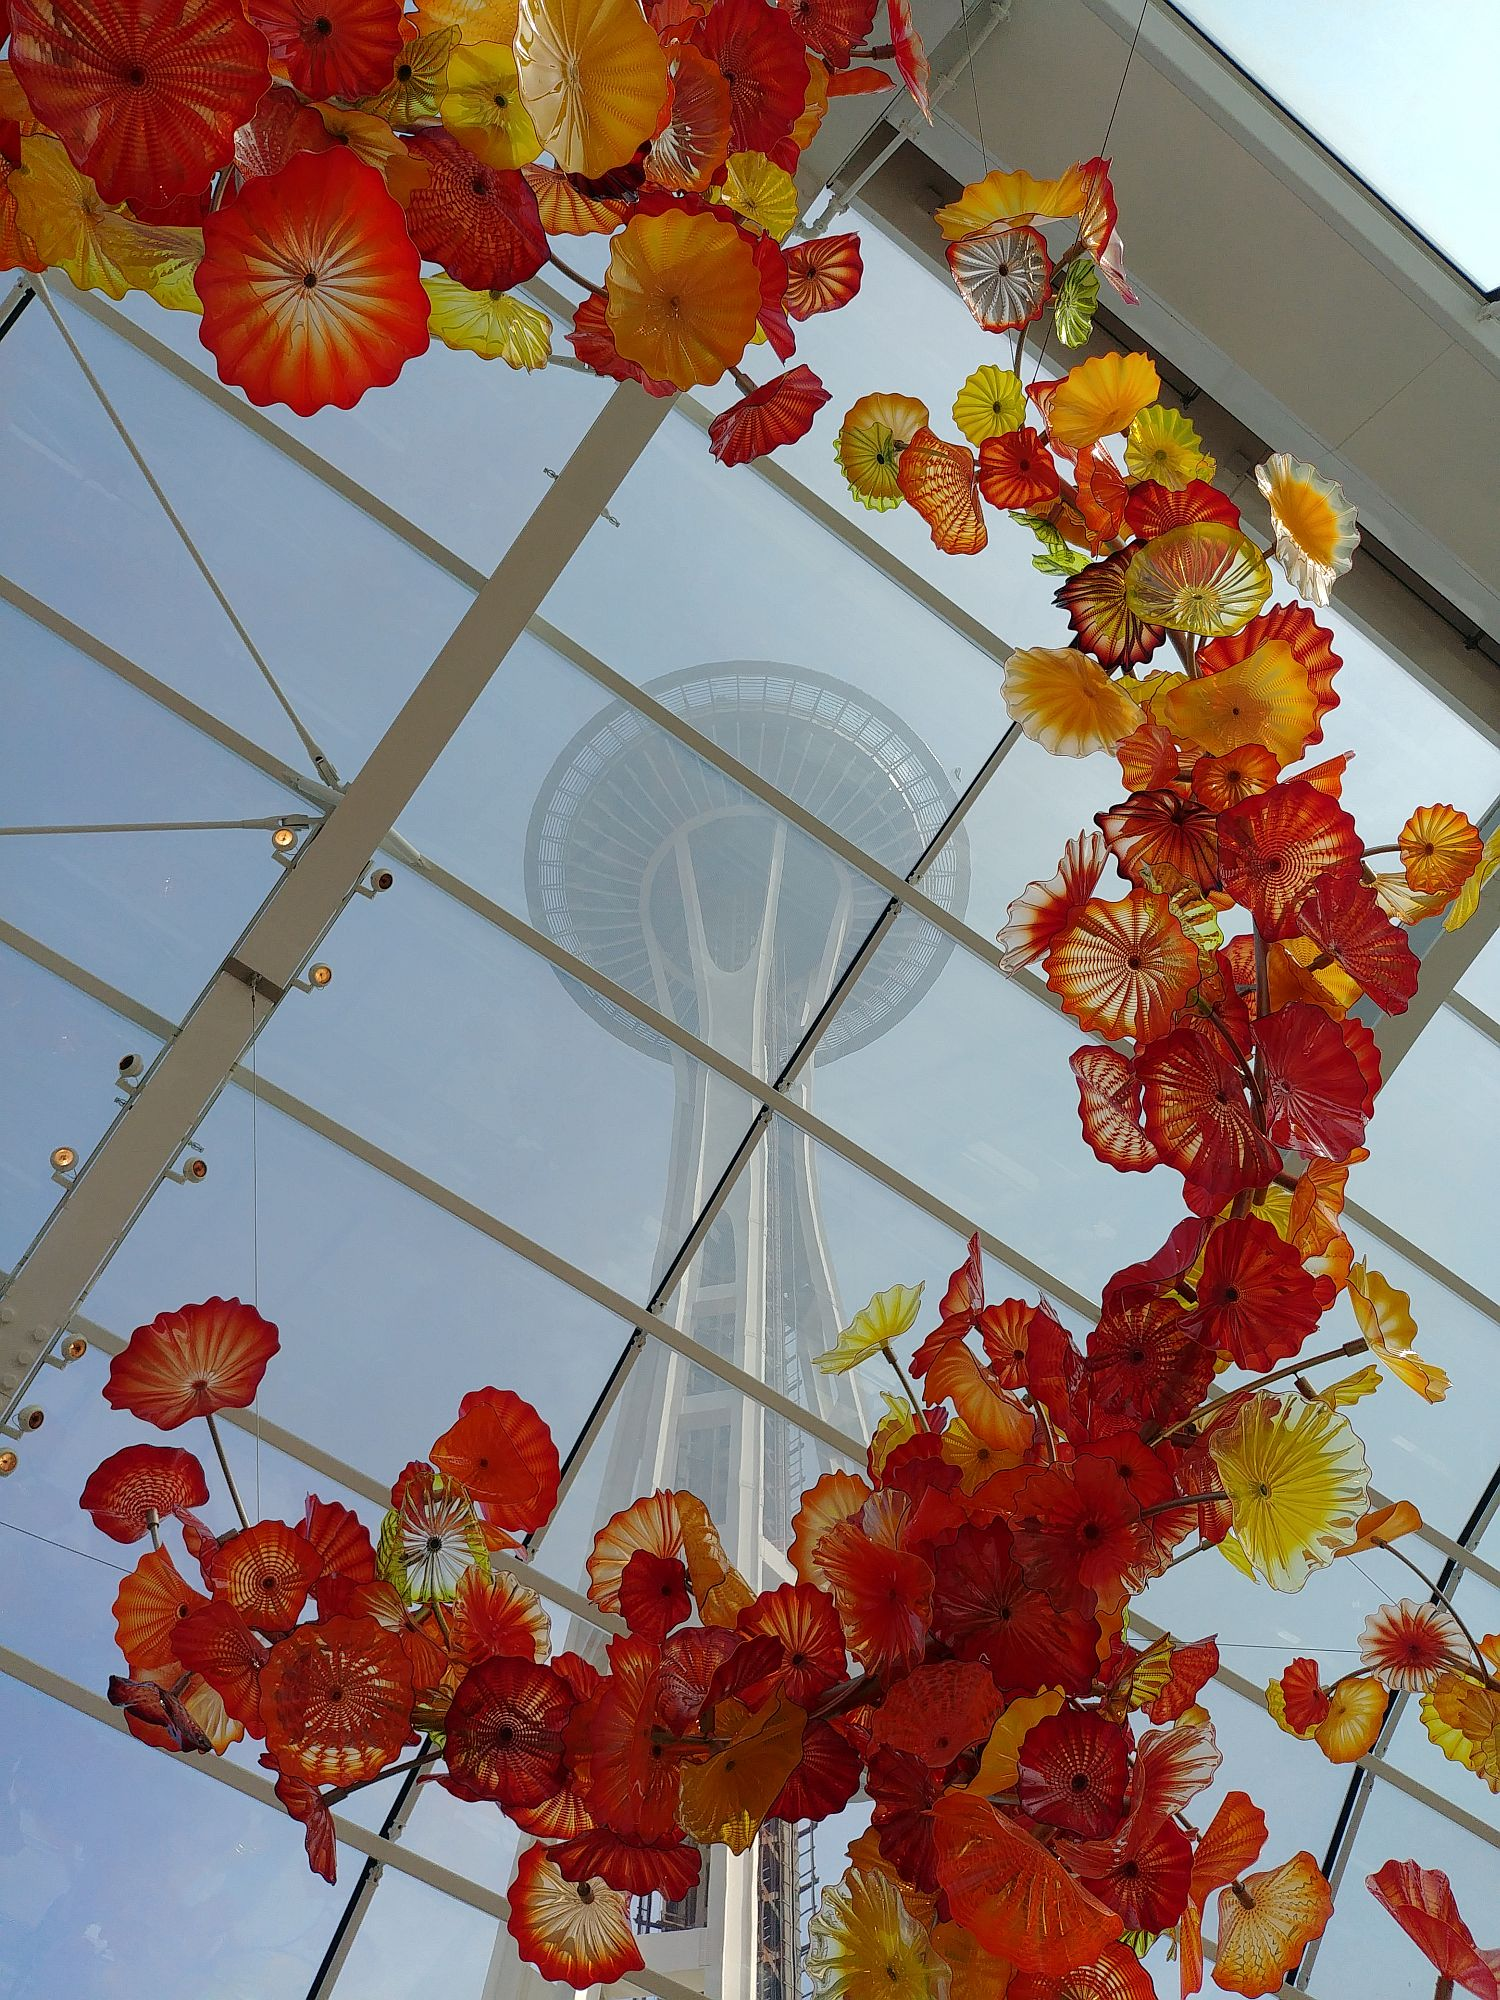 Chihuly Glass and Garden - 75 - Flowers and Space Needle